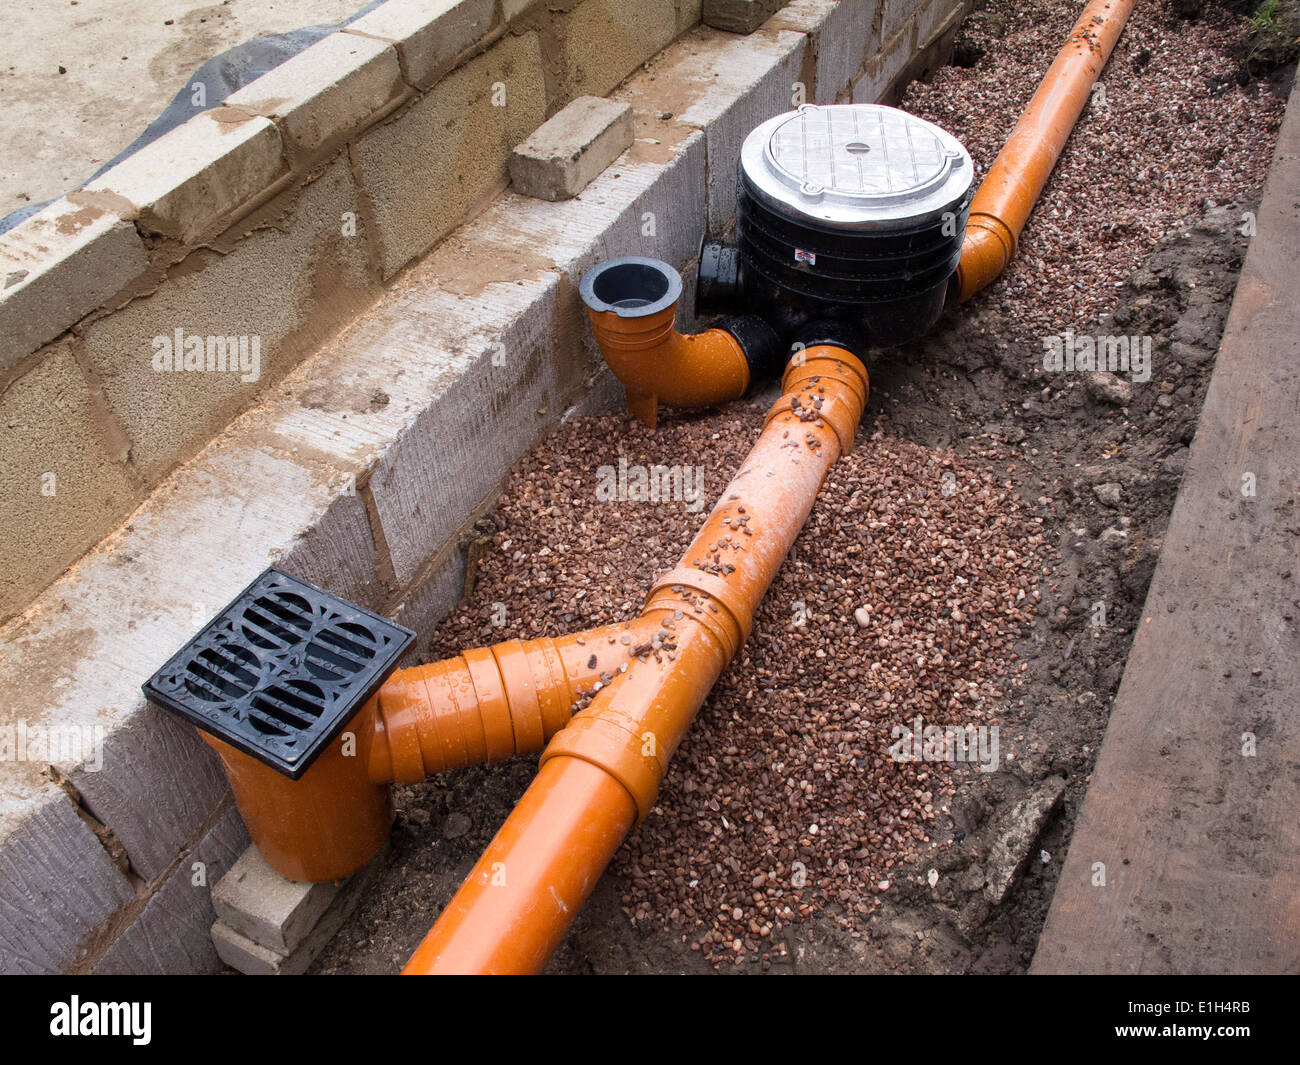 Home Water Filter >> self building house, drainage, drain pipe connection to gullies Stock Photo: 69833103 - Alamy